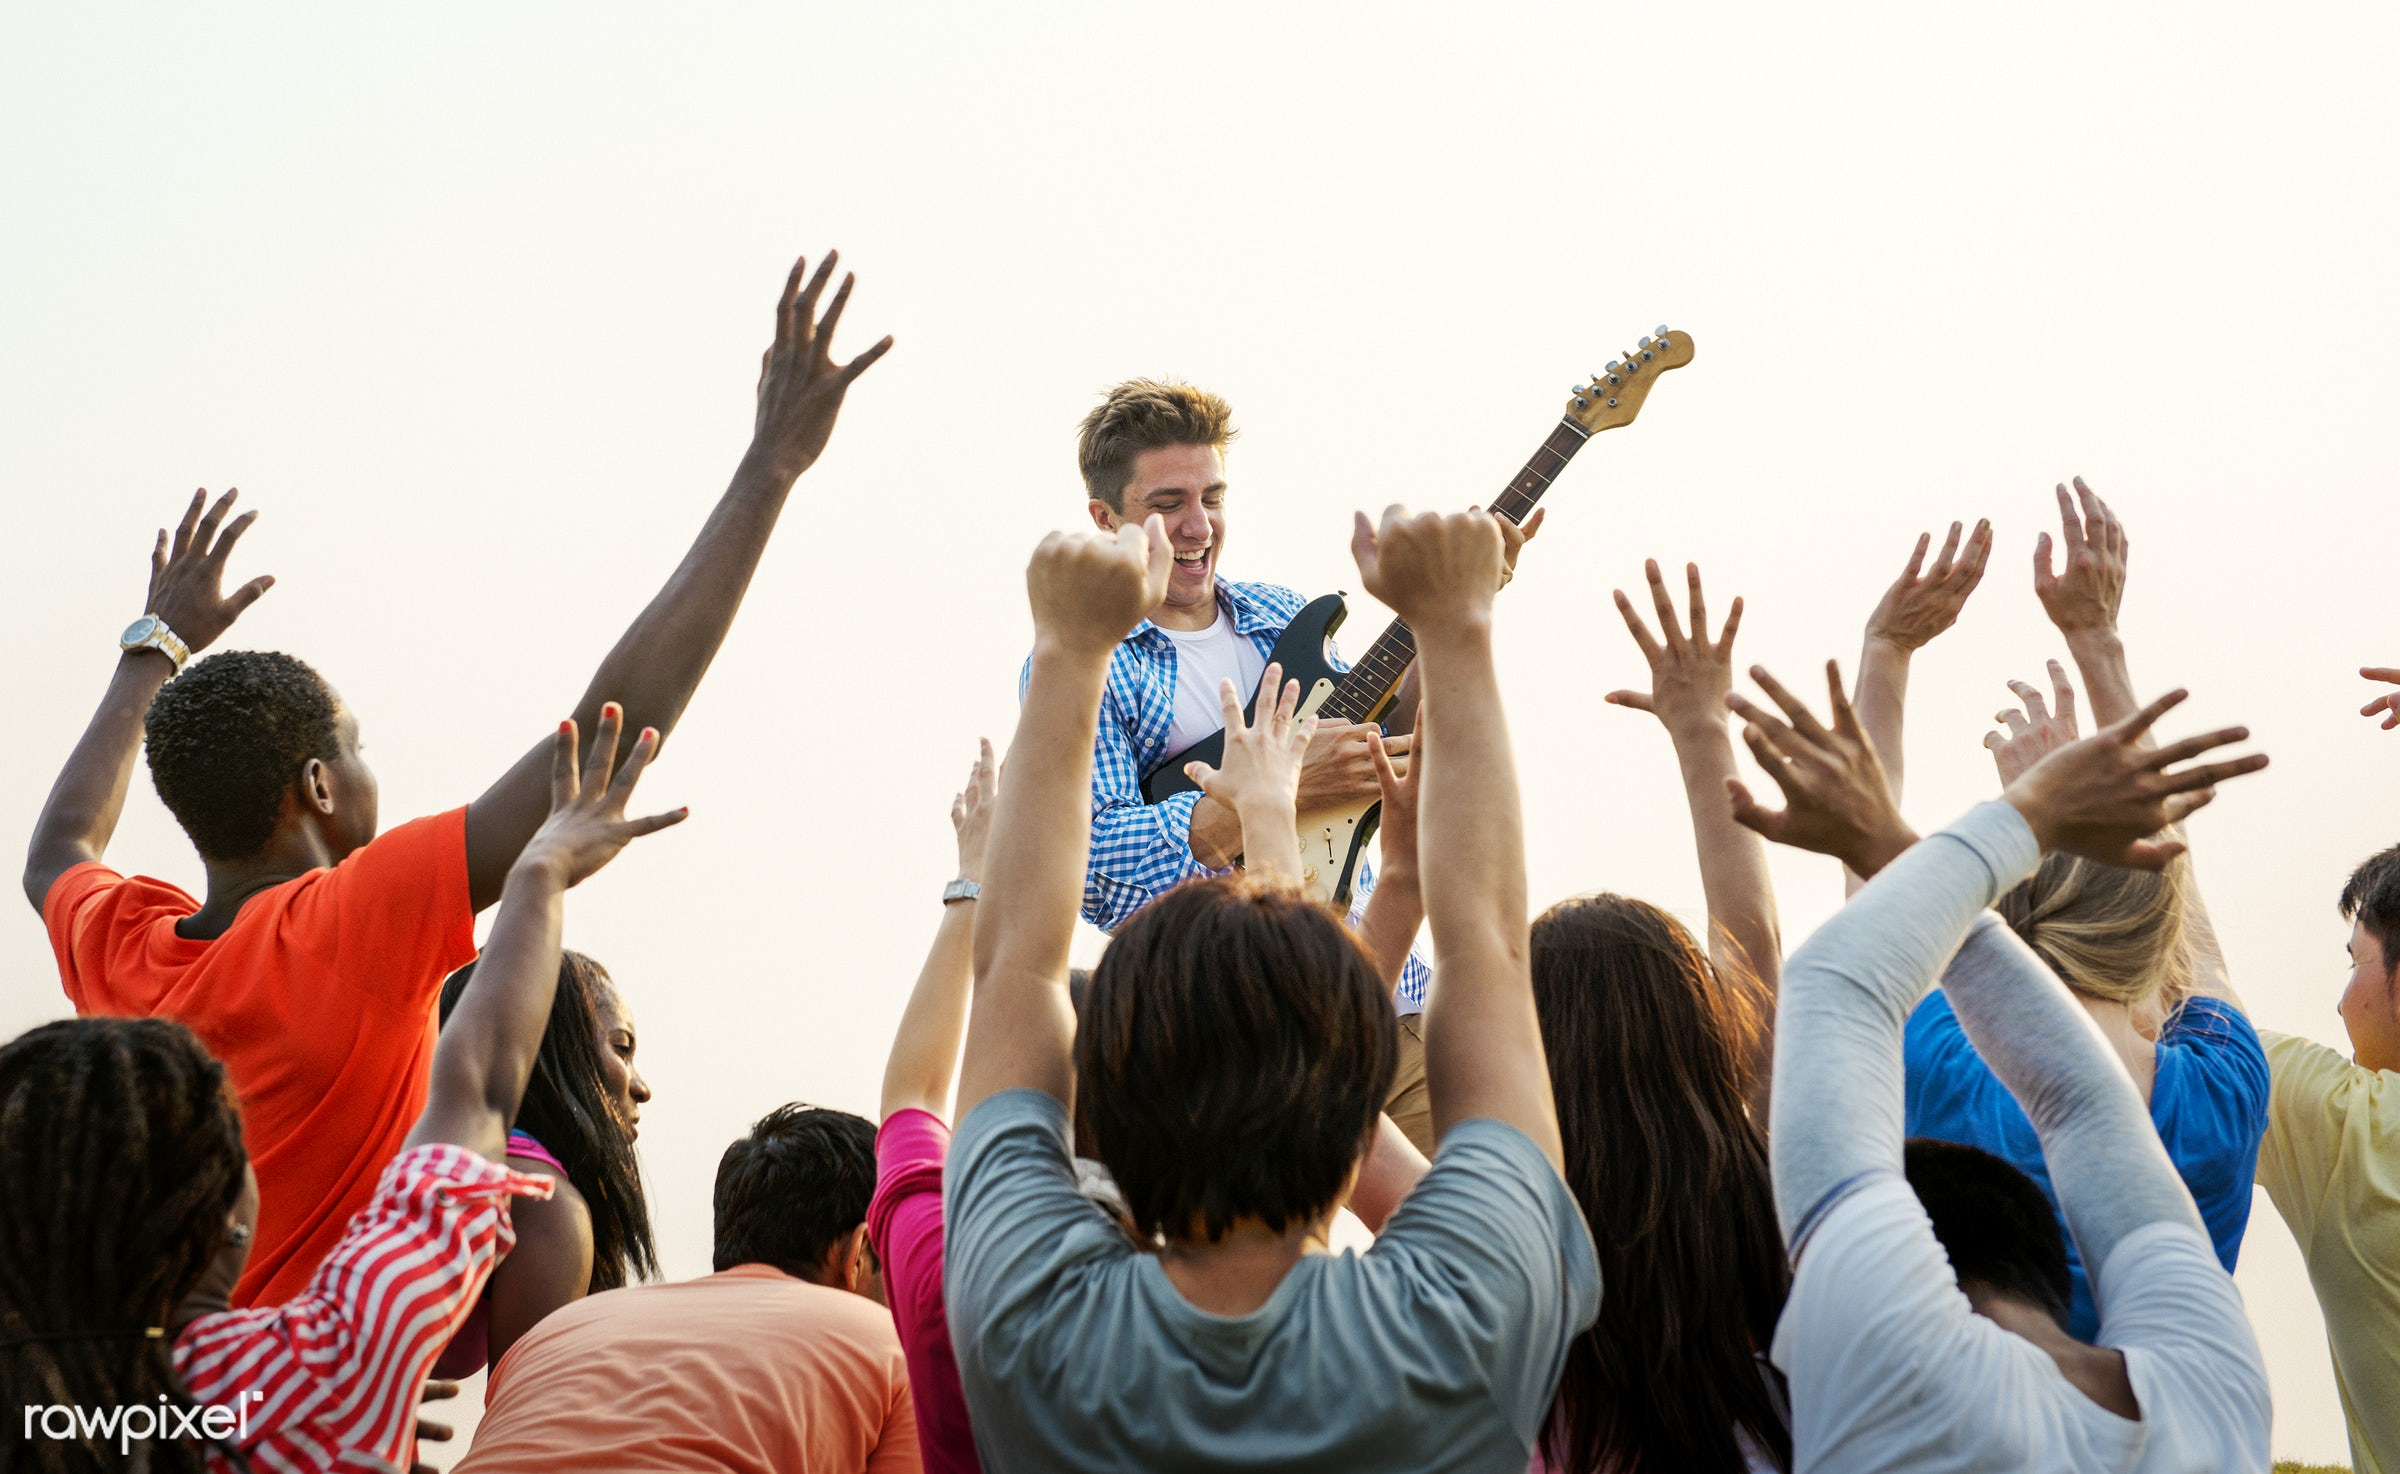 Guitarist playing at a music festival - love, rock, allies, arms raise, casual, celebration, cheerful, circle of friends,...